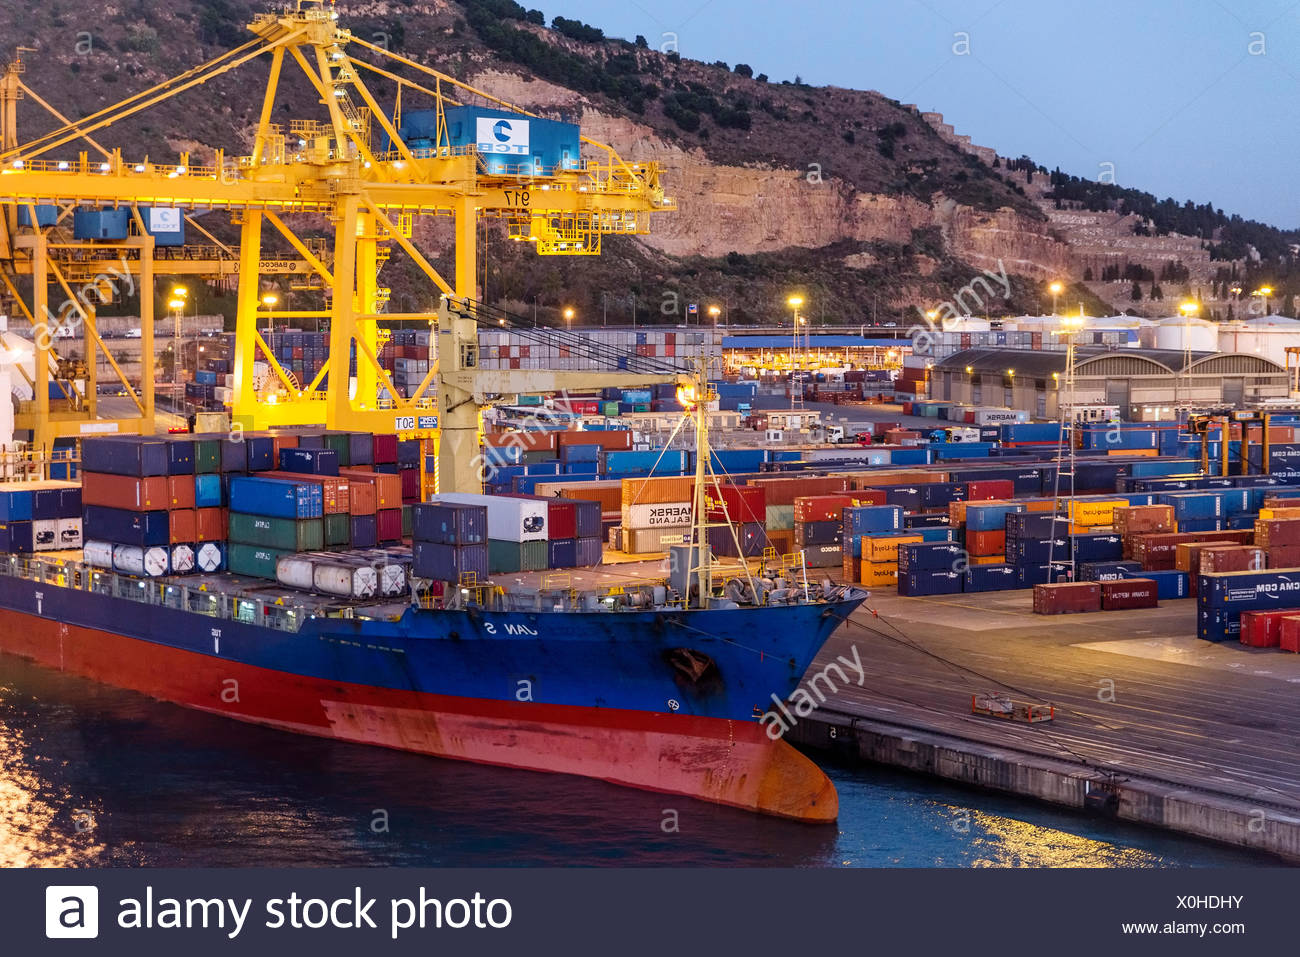 Cargo containers being loaded on to a shipping freighter , Barcelona, Spain - Stock Image